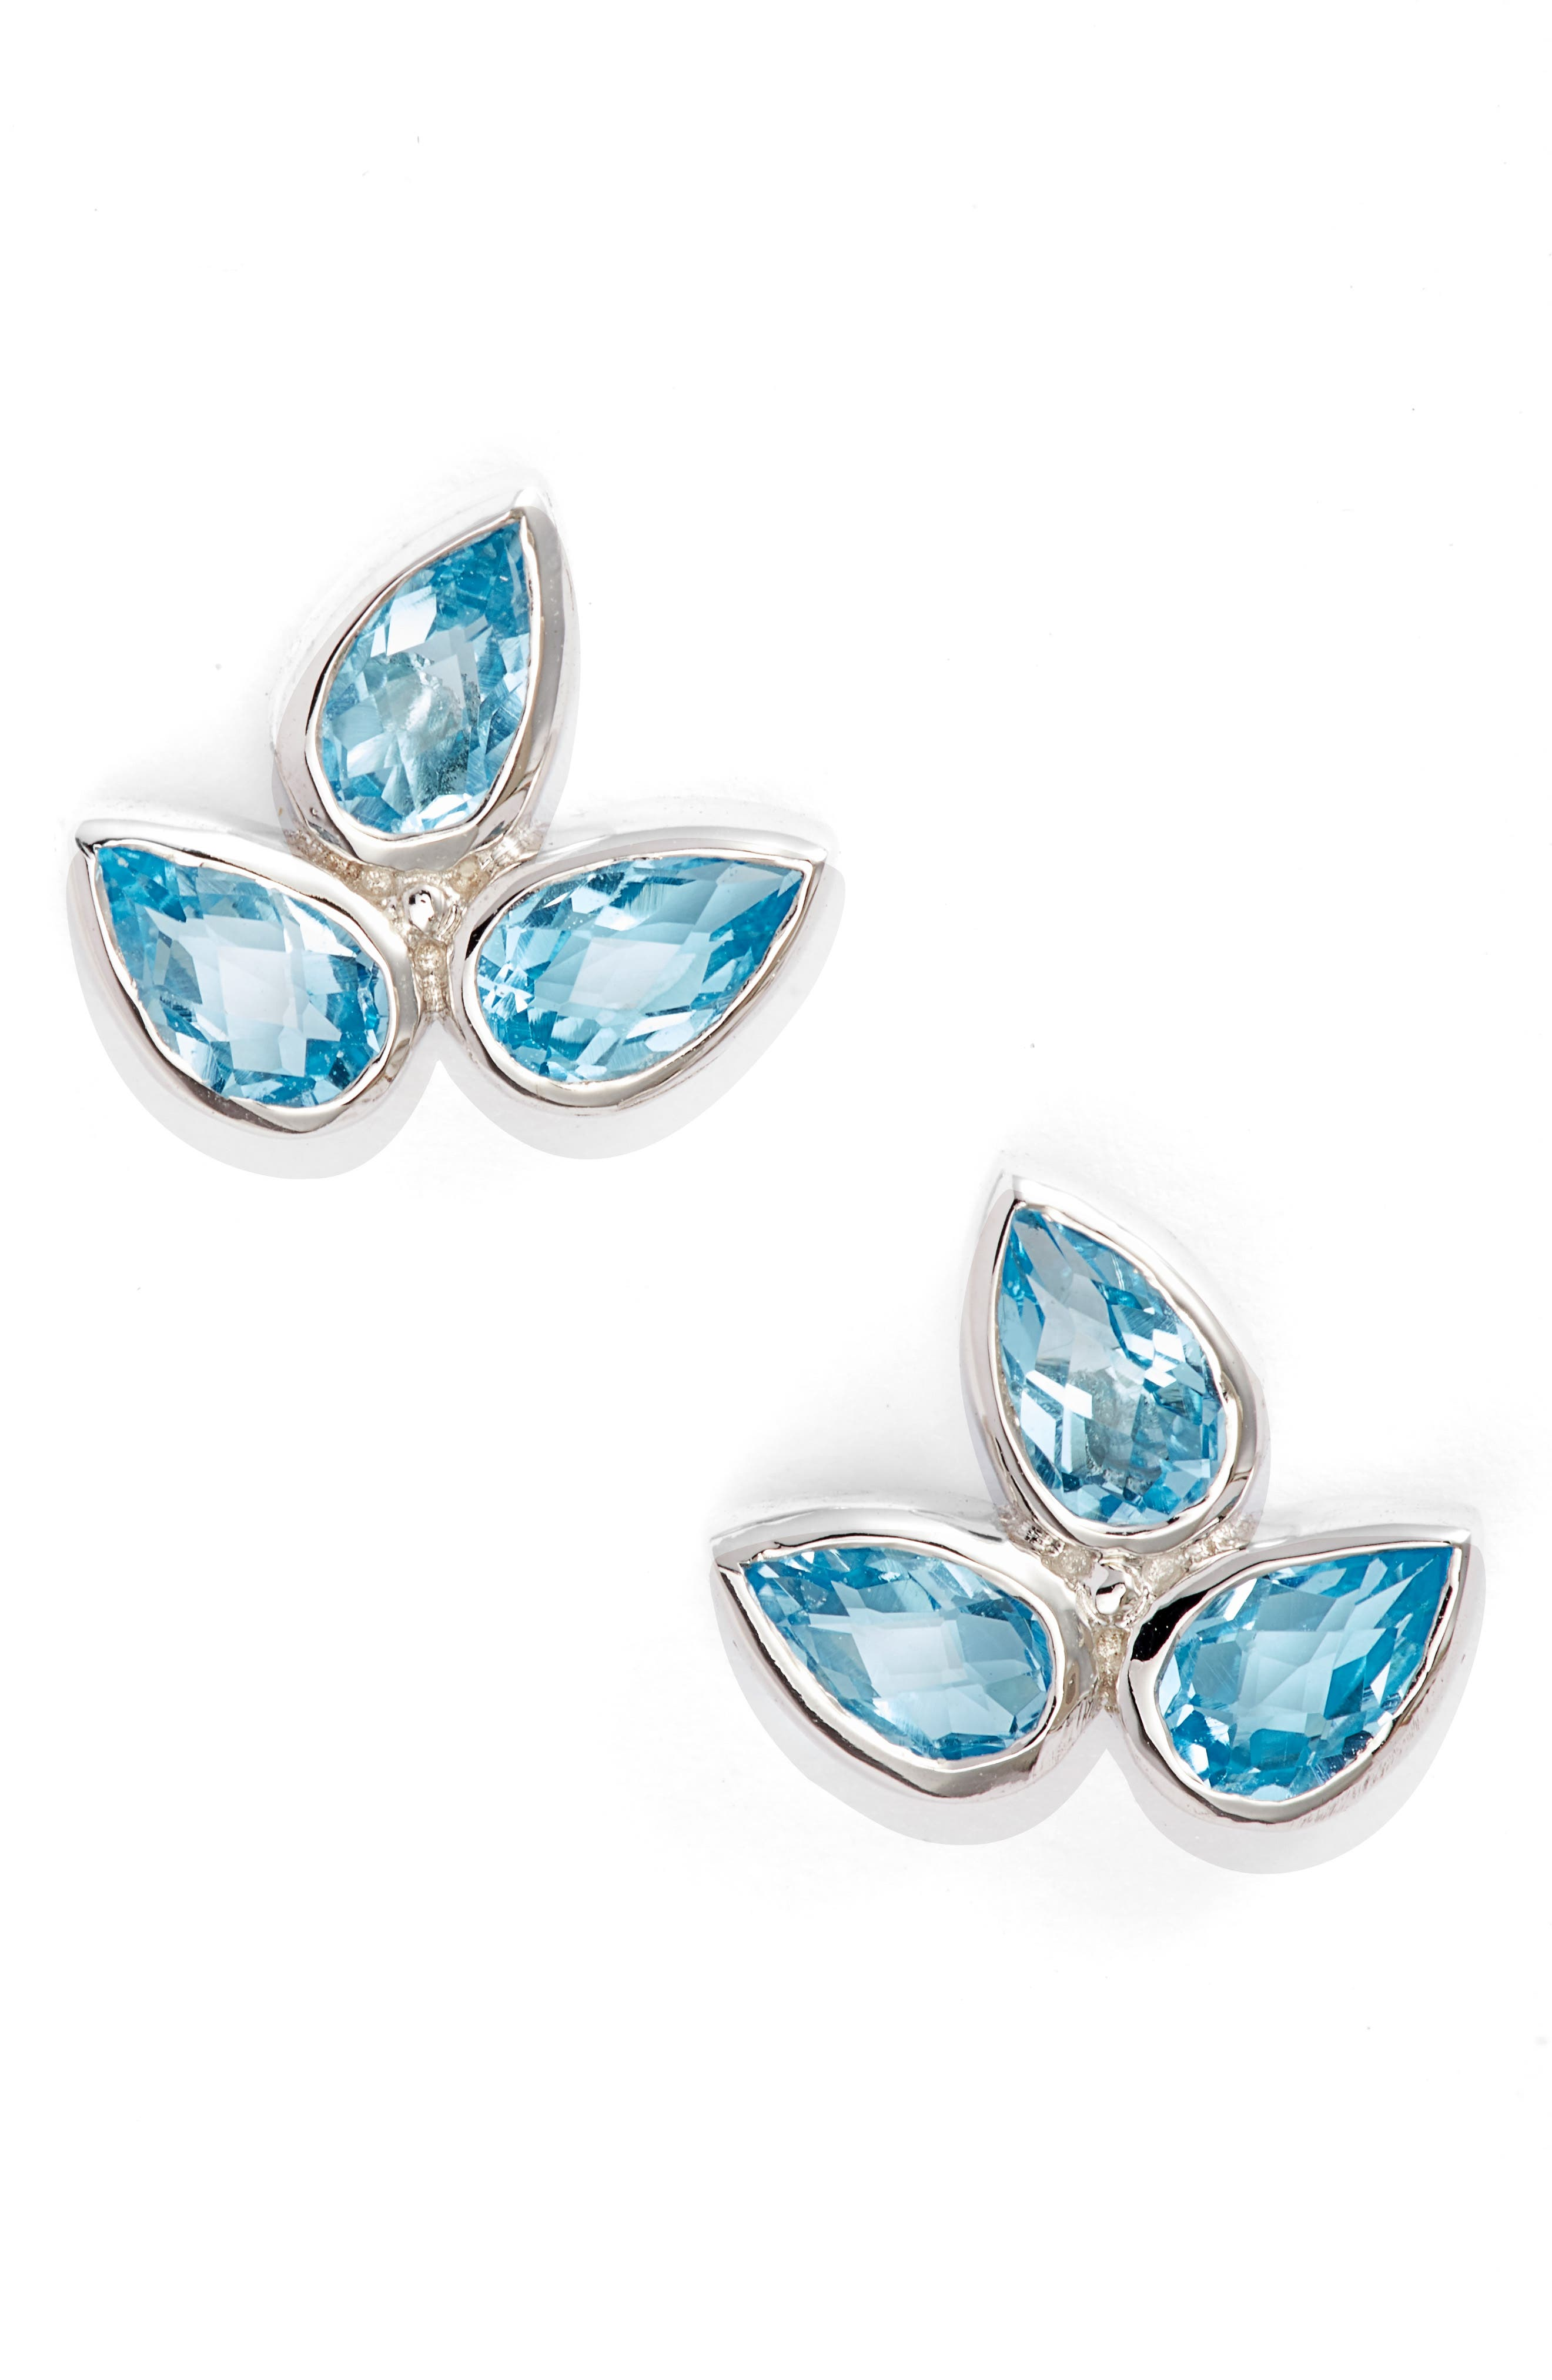 Micro Bouquet White Topaz Post Earrings,                             Main thumbnail 1, color,                             BLUE TOPAZ